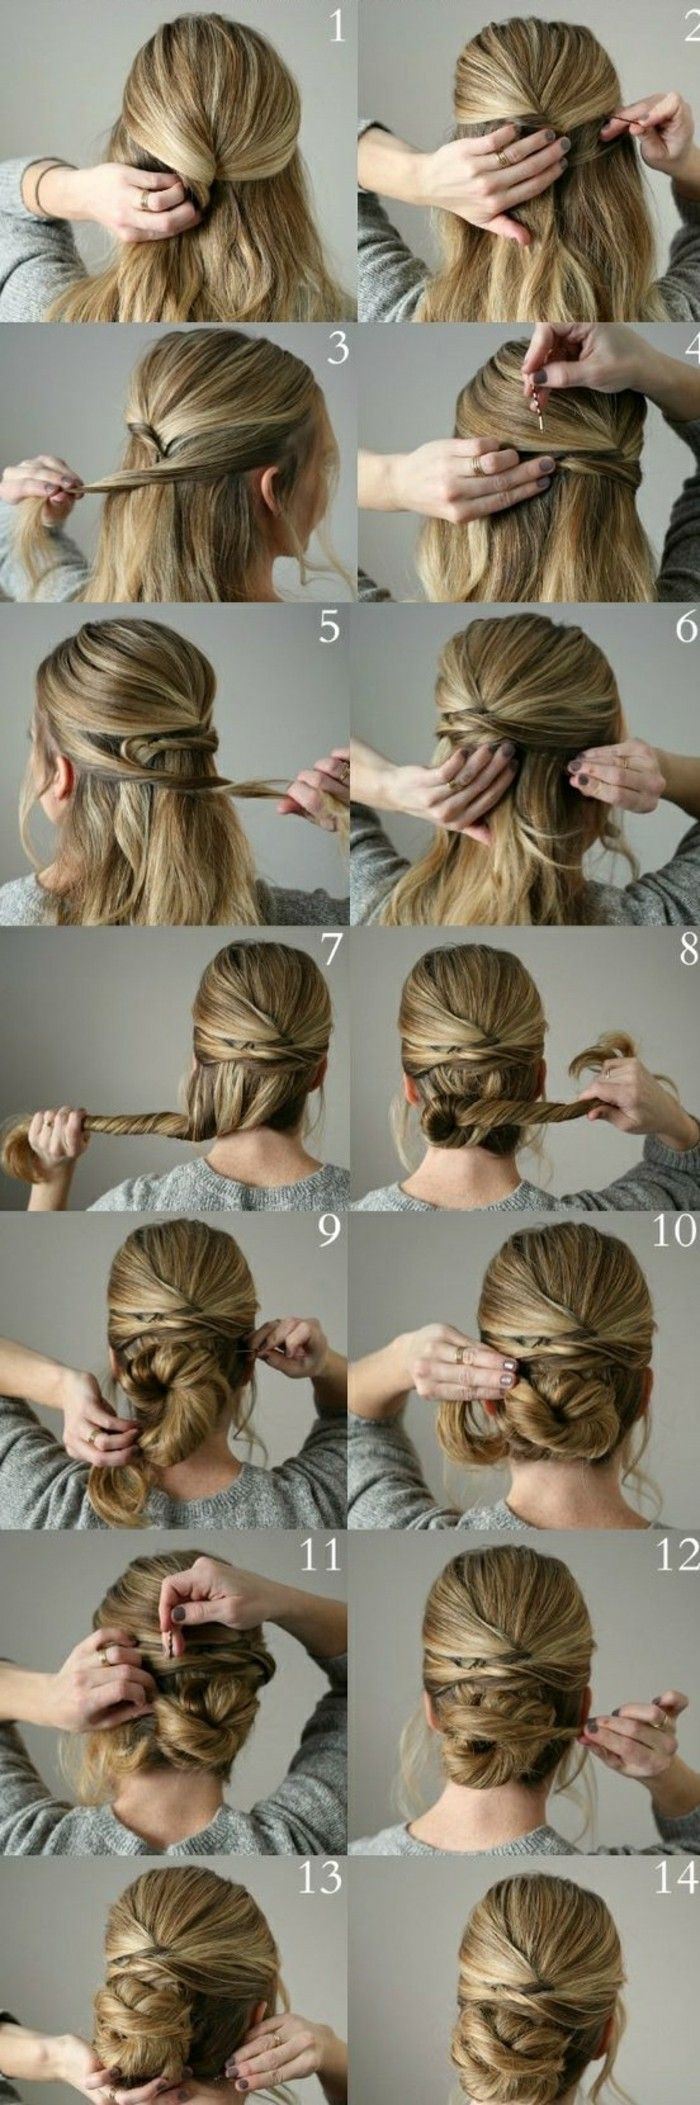 ▷ 1001+ ideas on how to make effective updos yourself